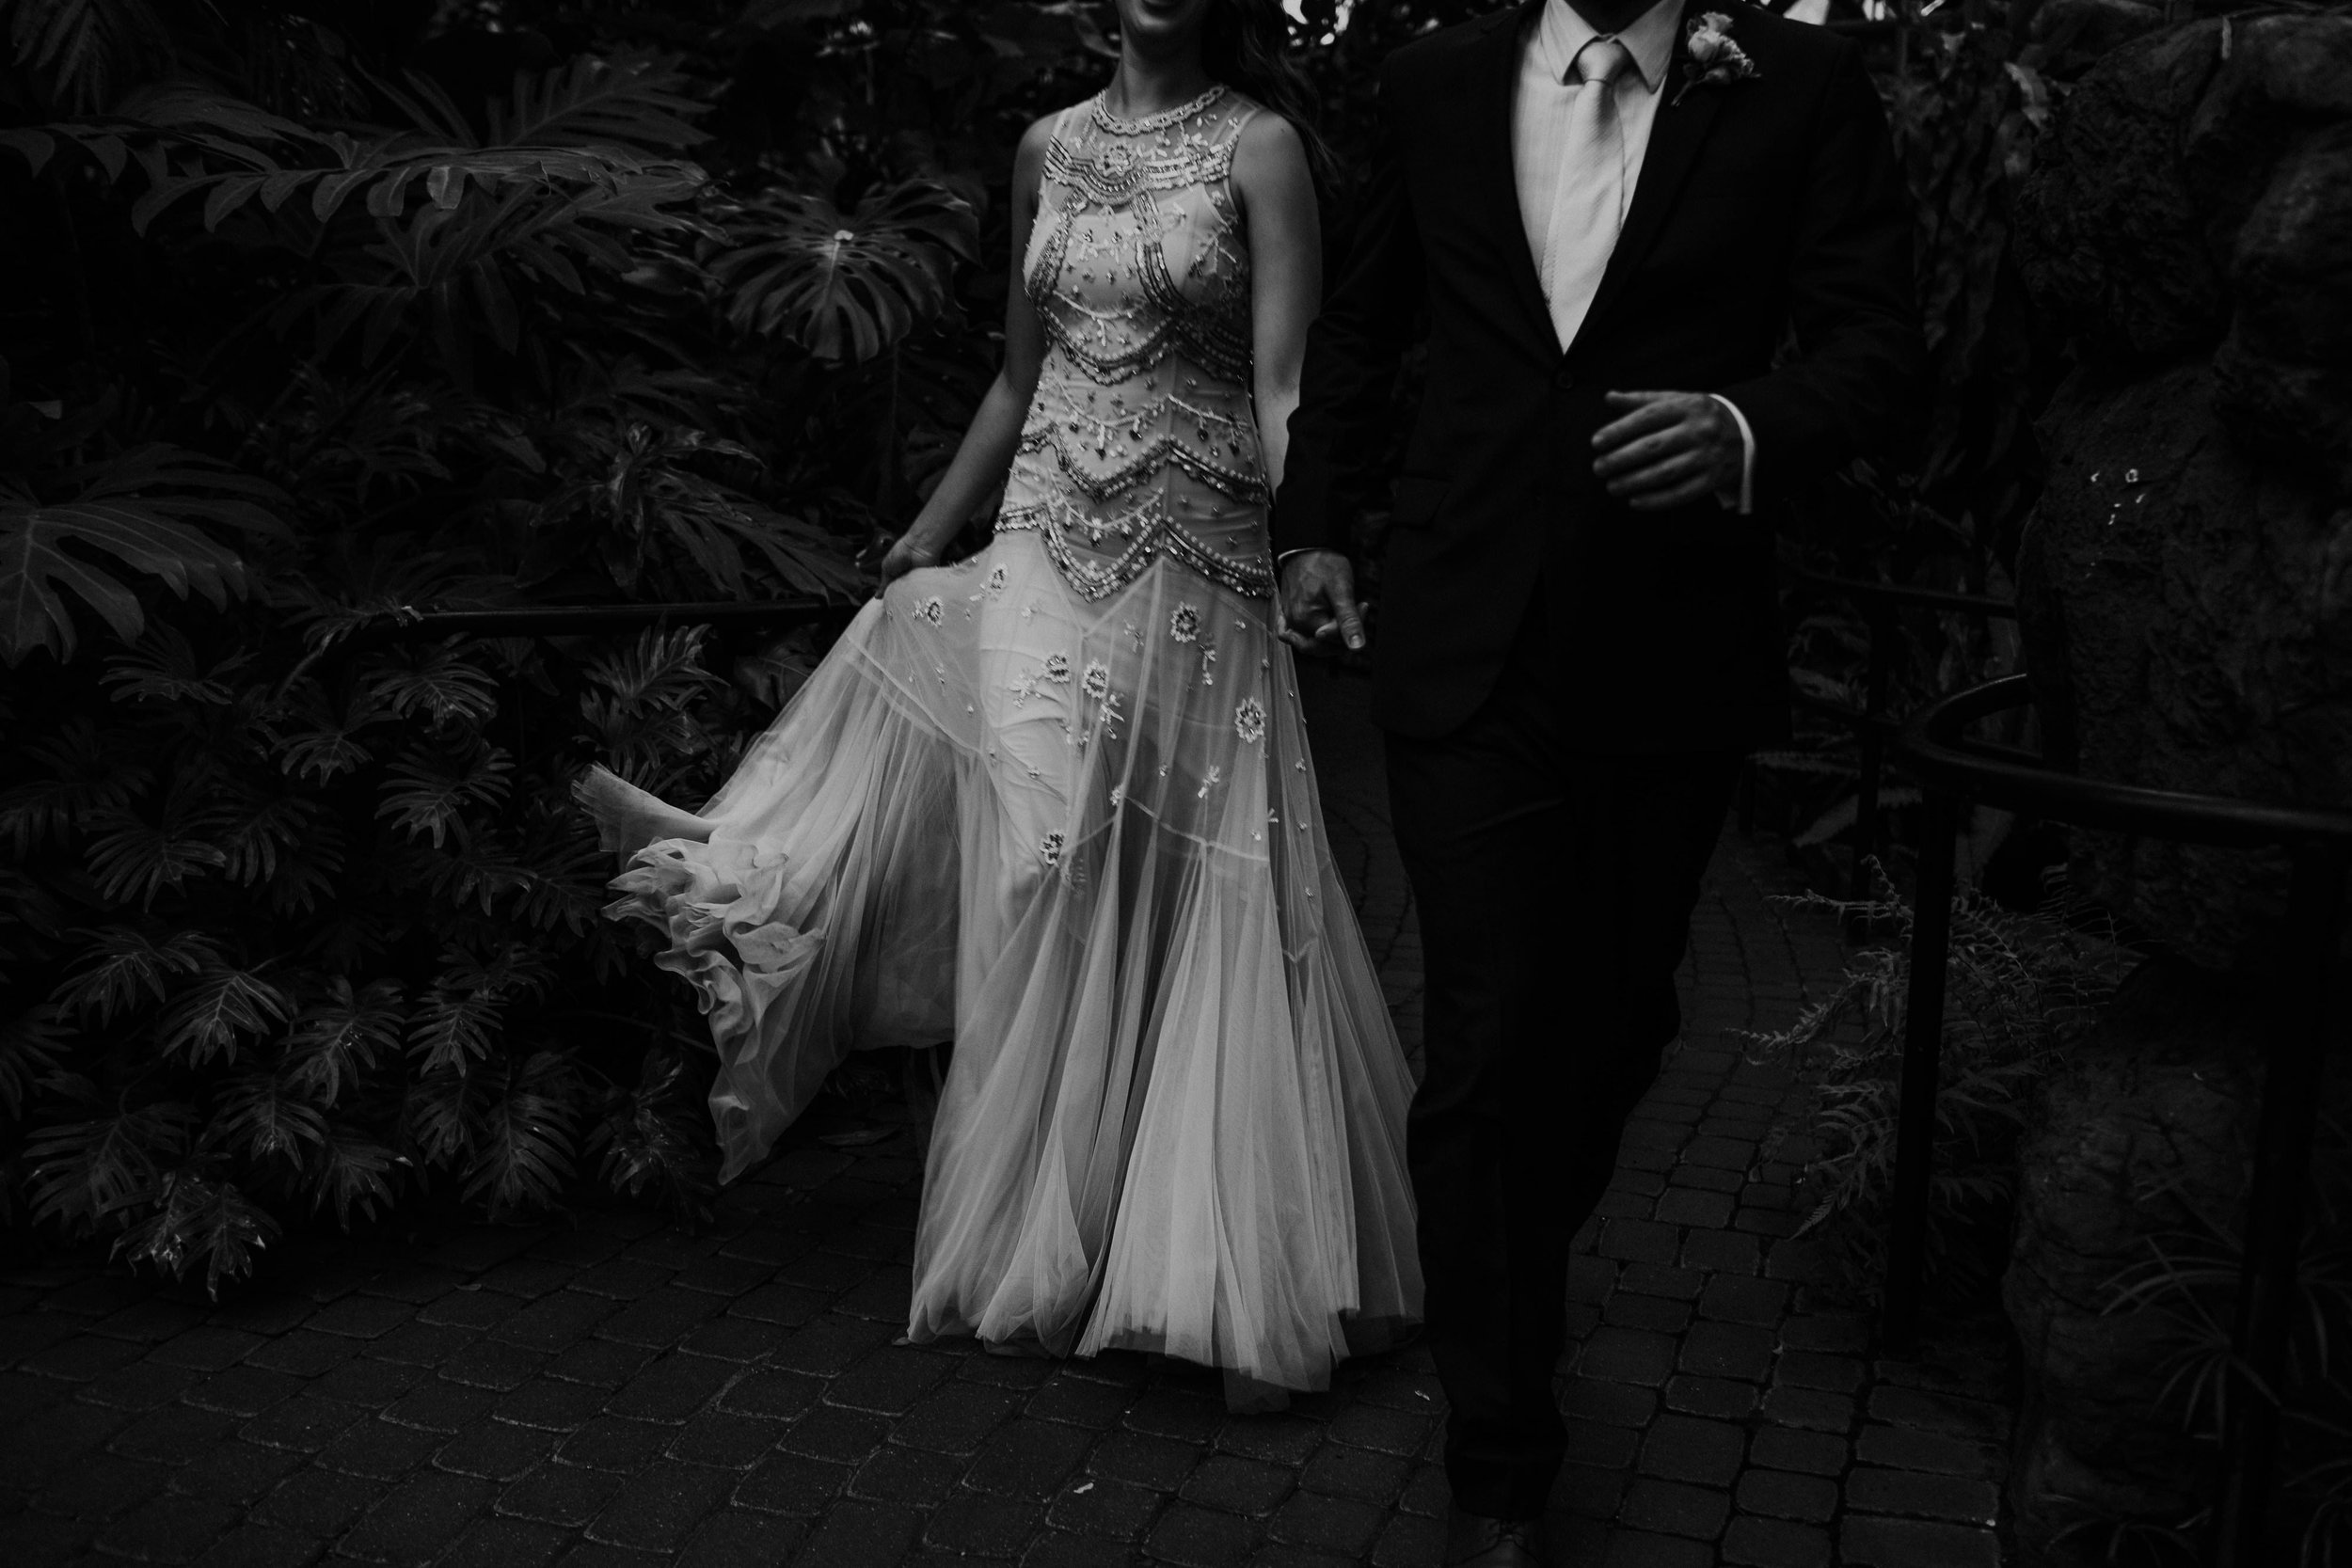 franklin park conservatory wedding columbus ohio wedding photographer grace e jones photography151.jpg